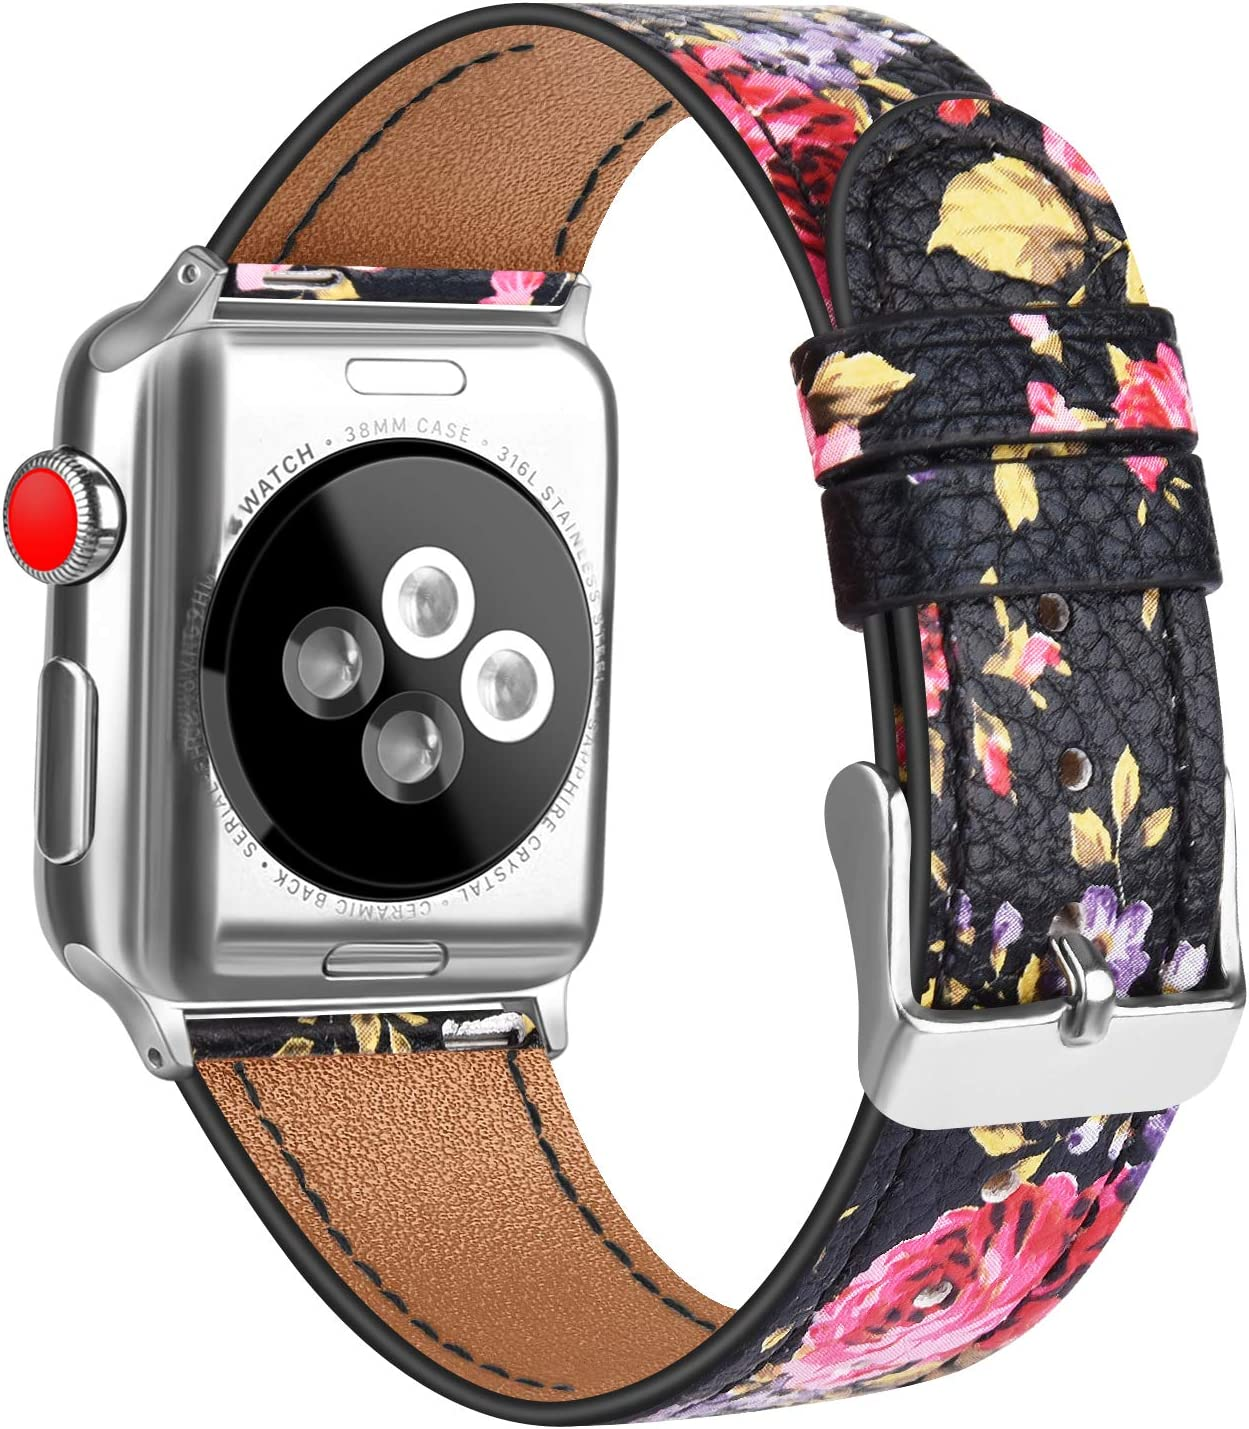 Oumida Leather Band Compatible with Apple Watch Band 44mm 42mm 40mm 38mm, iWatch Bands Series SE, Series 6, Series 5, Series 4, Series 3, Series 2, Series 1 for Women Men